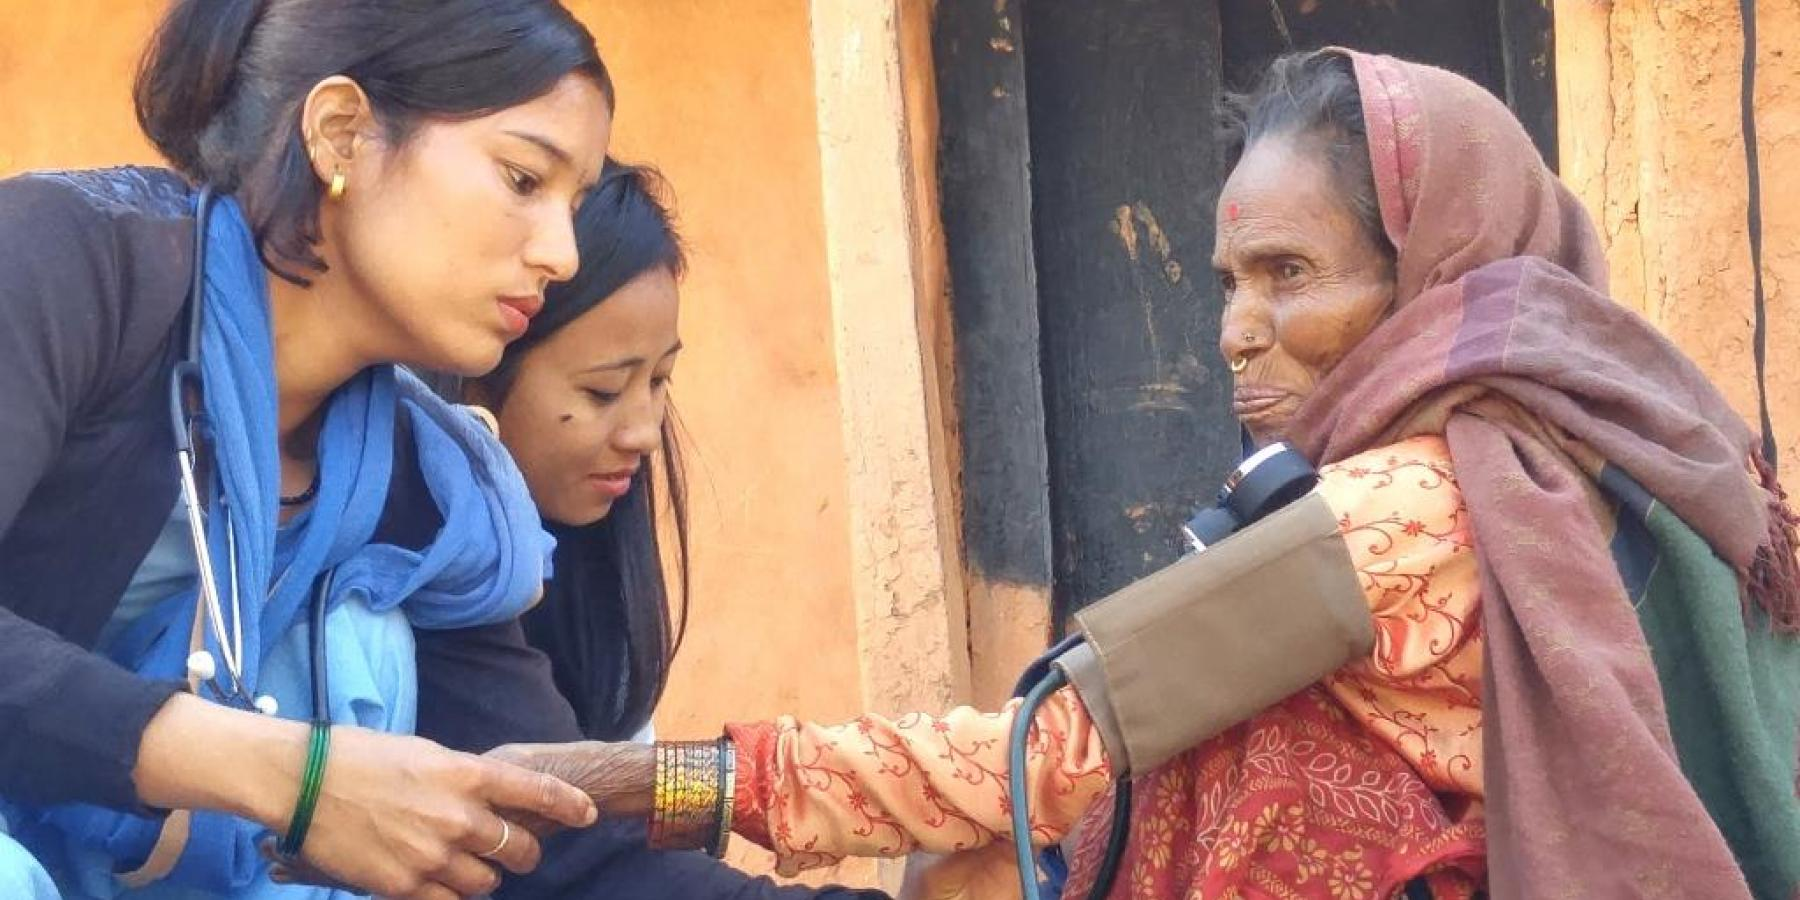 Community health workers check the blood pressure of a woman with breathing difficulties, Achham district, Nepal, Feb 2018